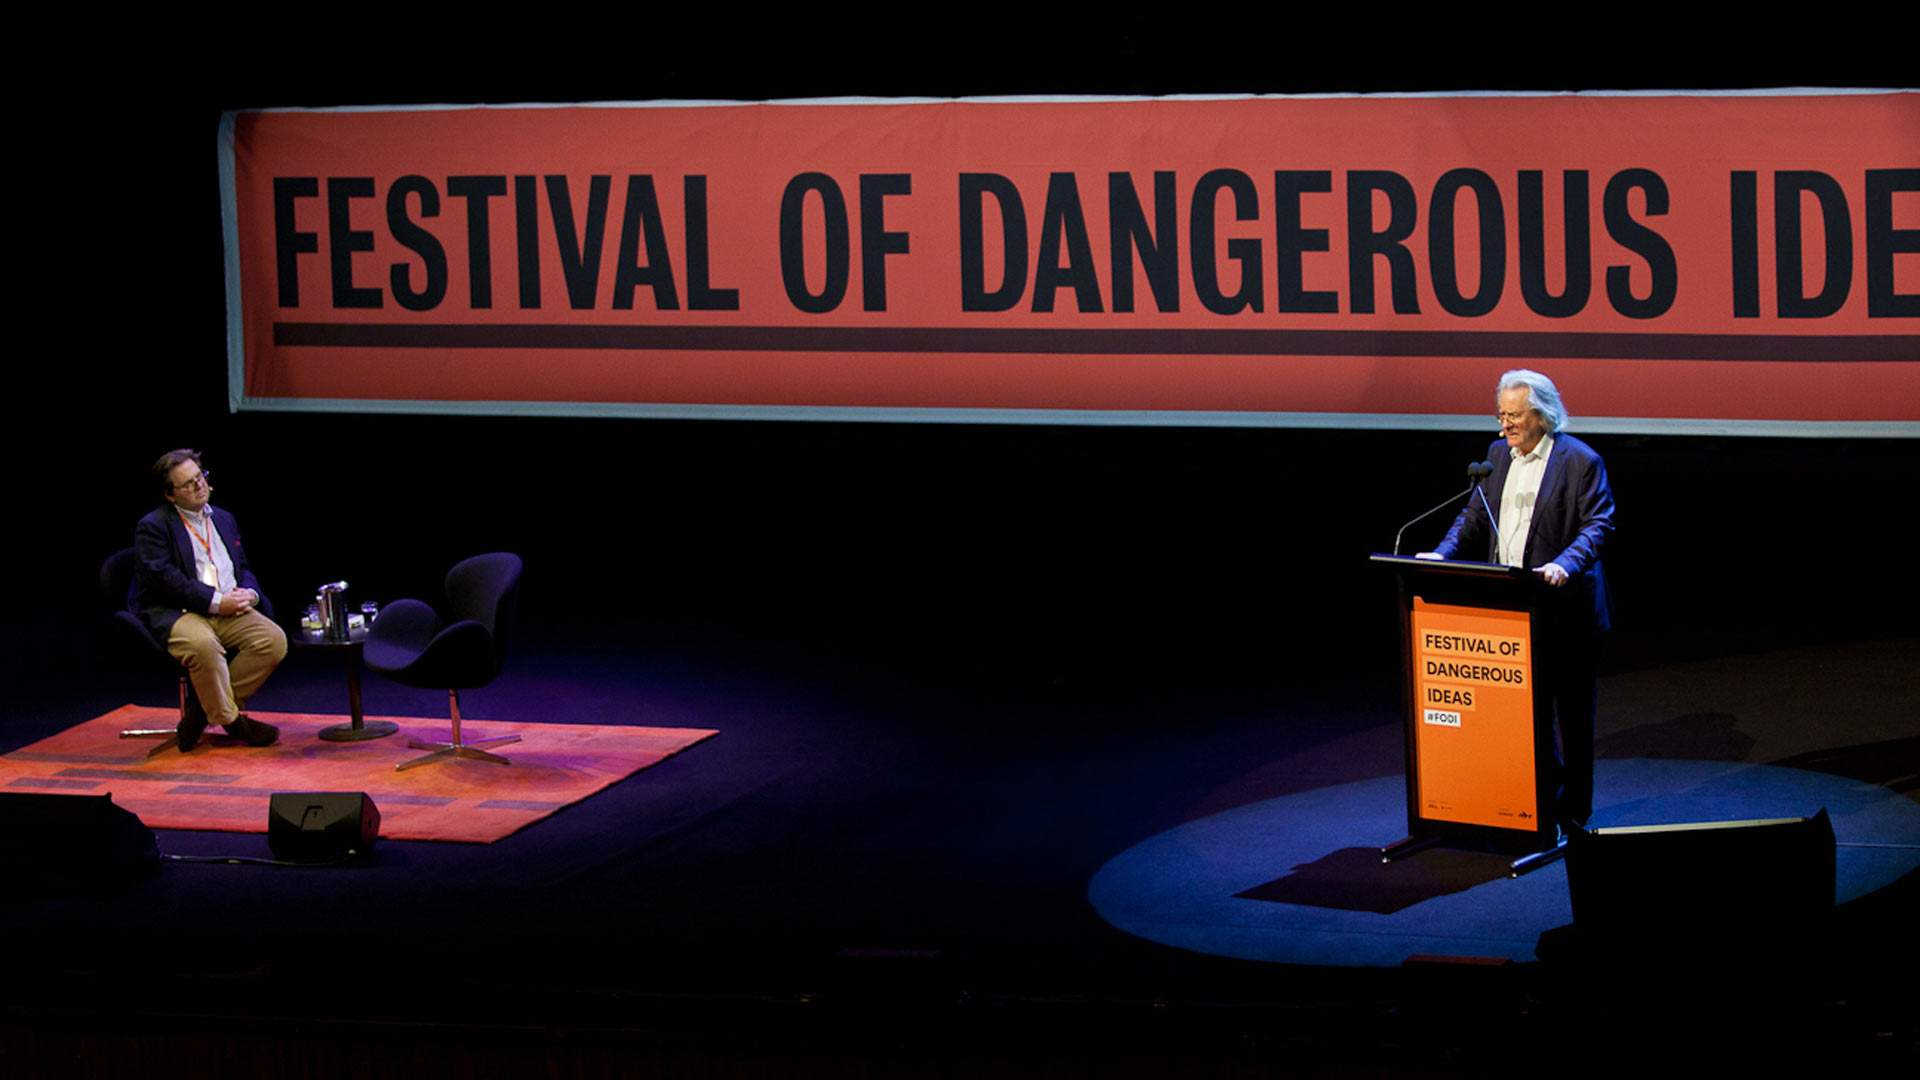 Stephen Fry and an Ex-Westboro Baptist Church Member Will Speak at the New-Look Festival of Dangerous Ideas